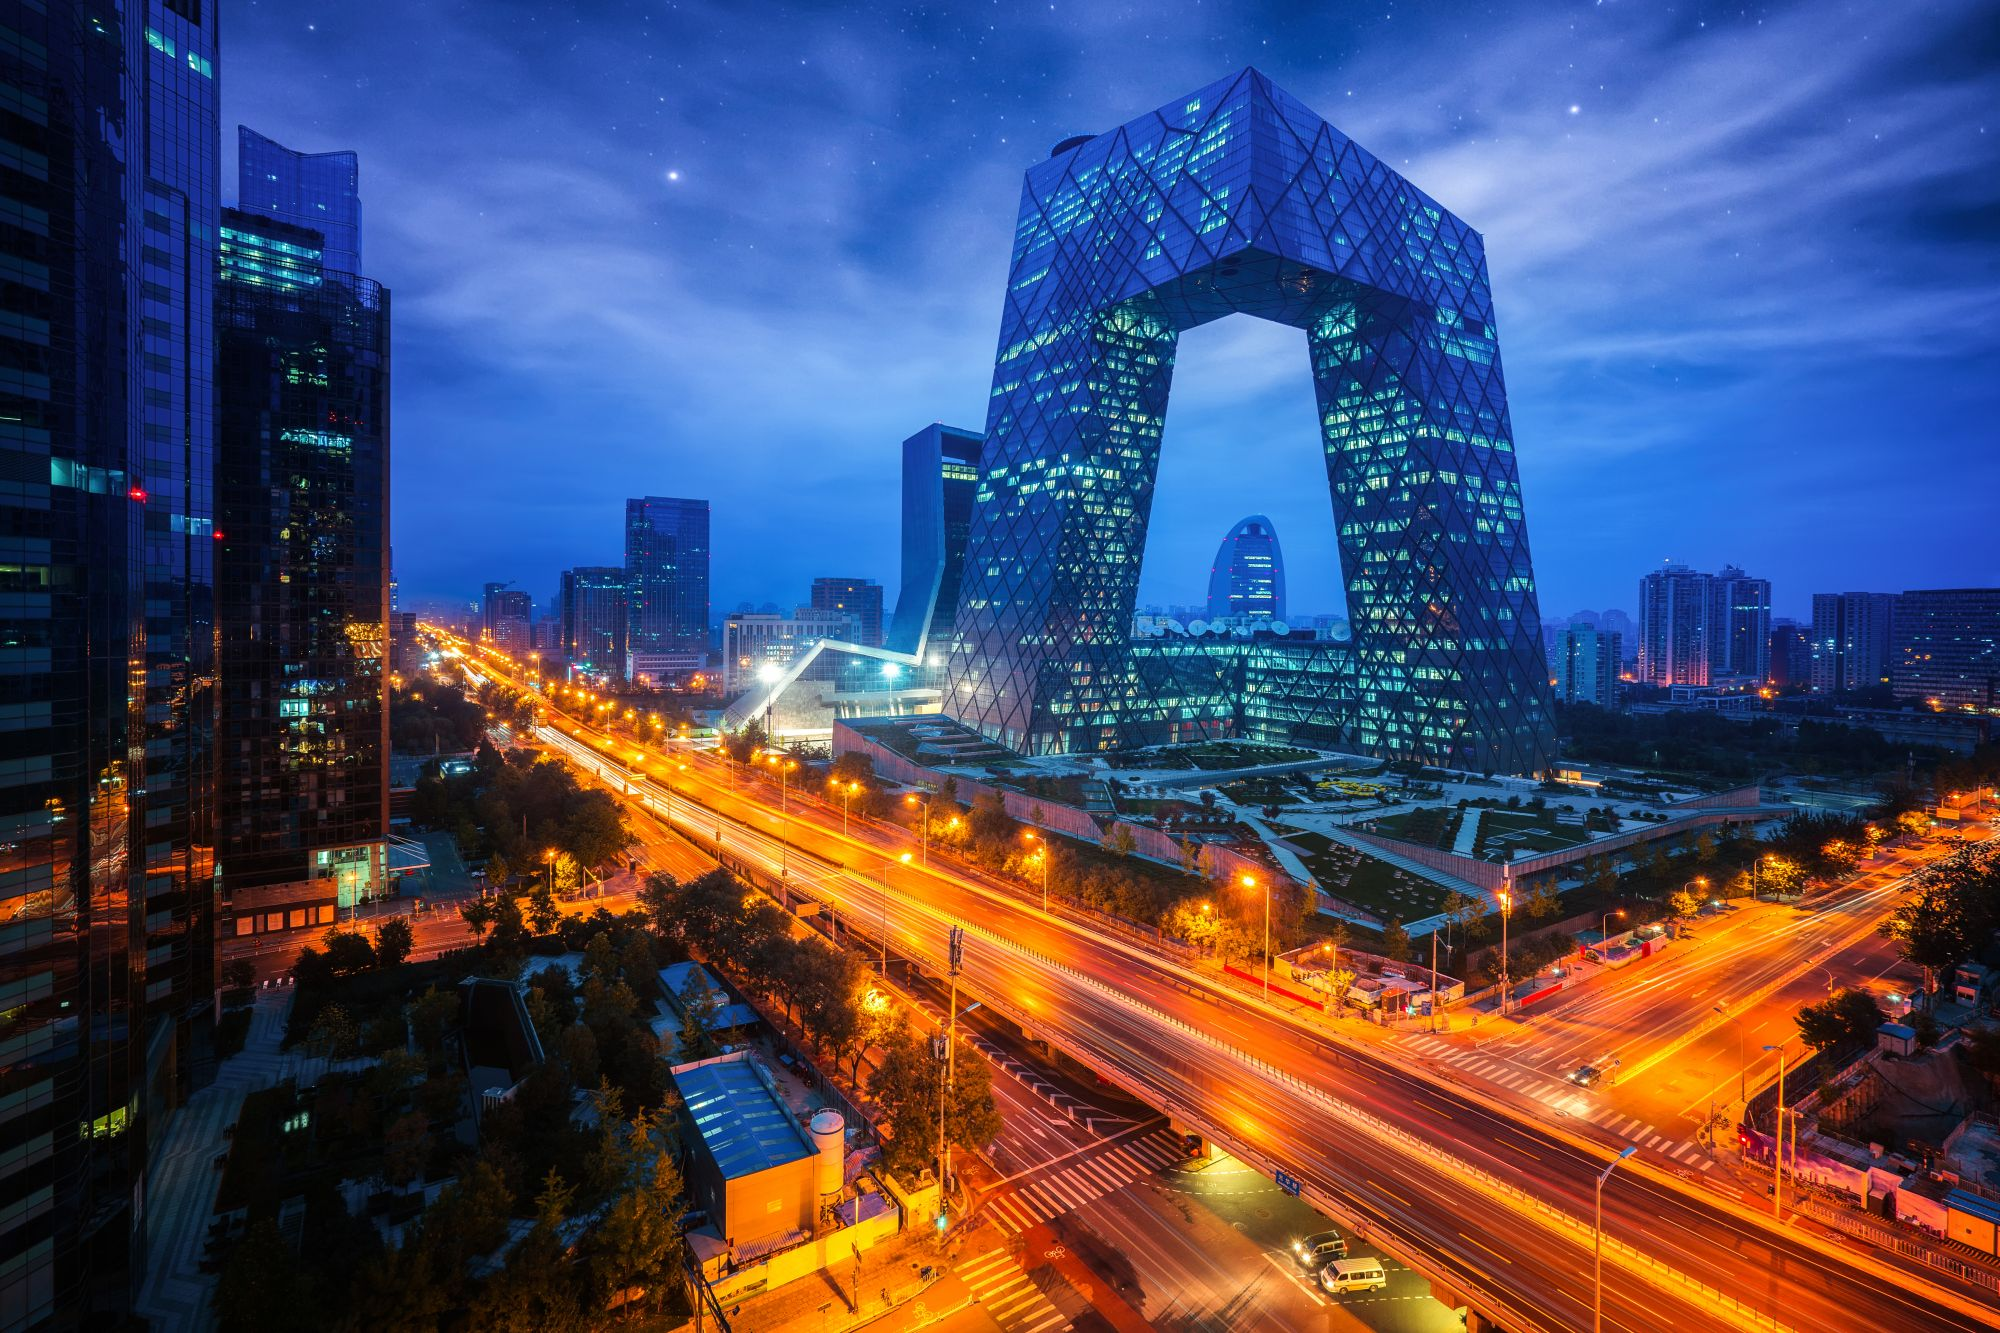 Tapping into Beijing's business network